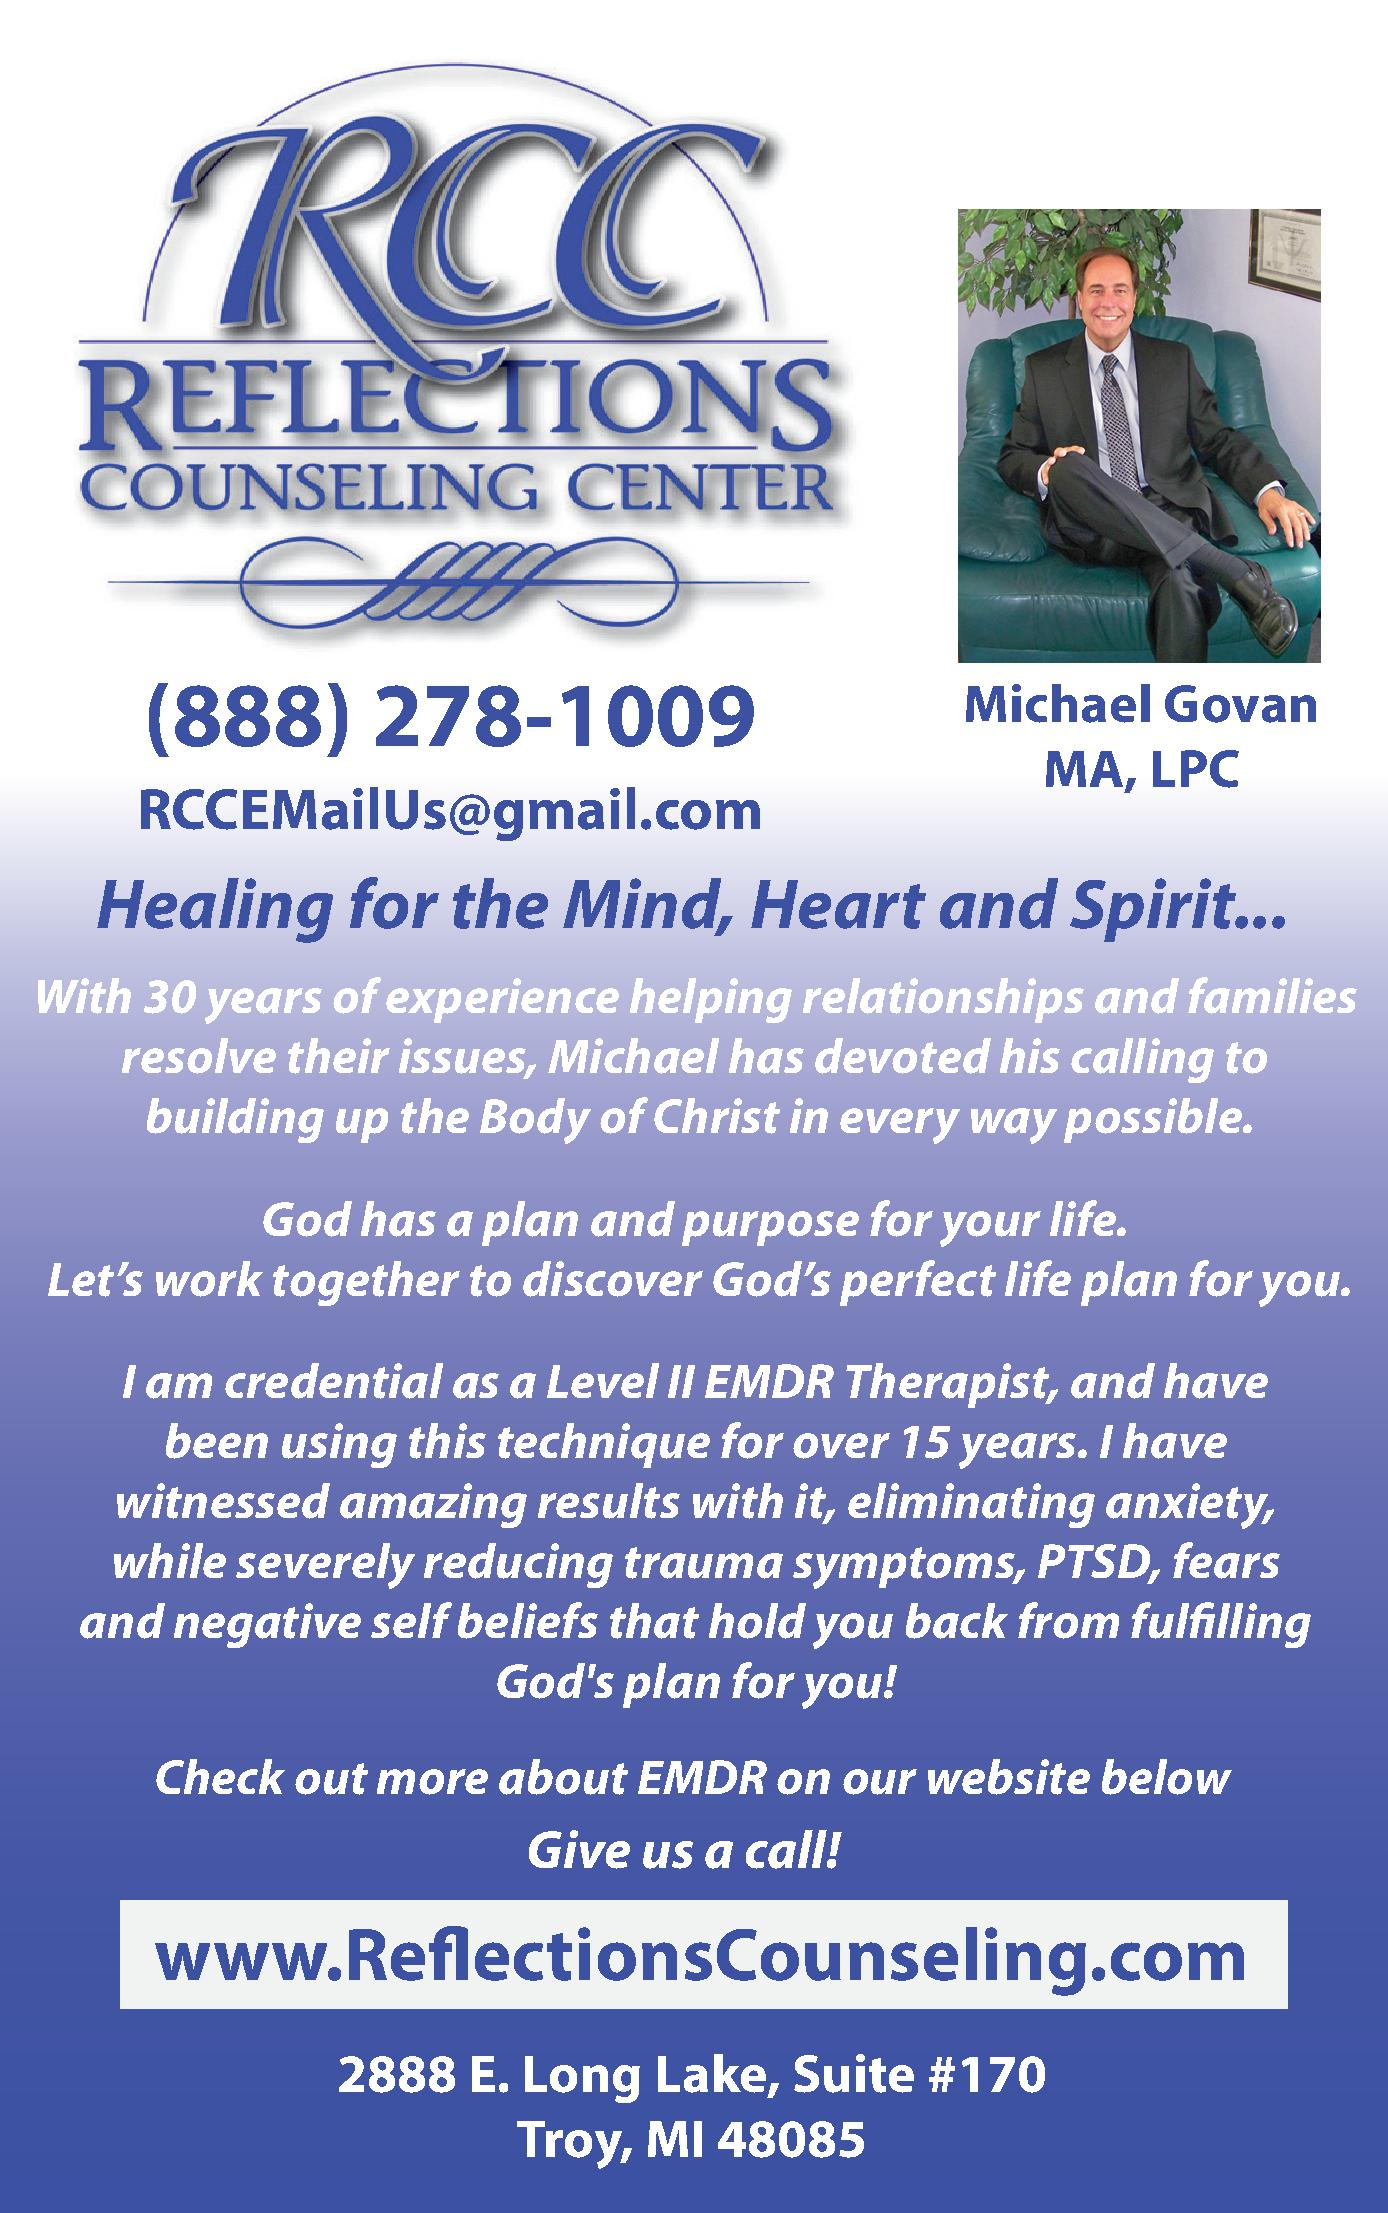 Reflections Counseling Center